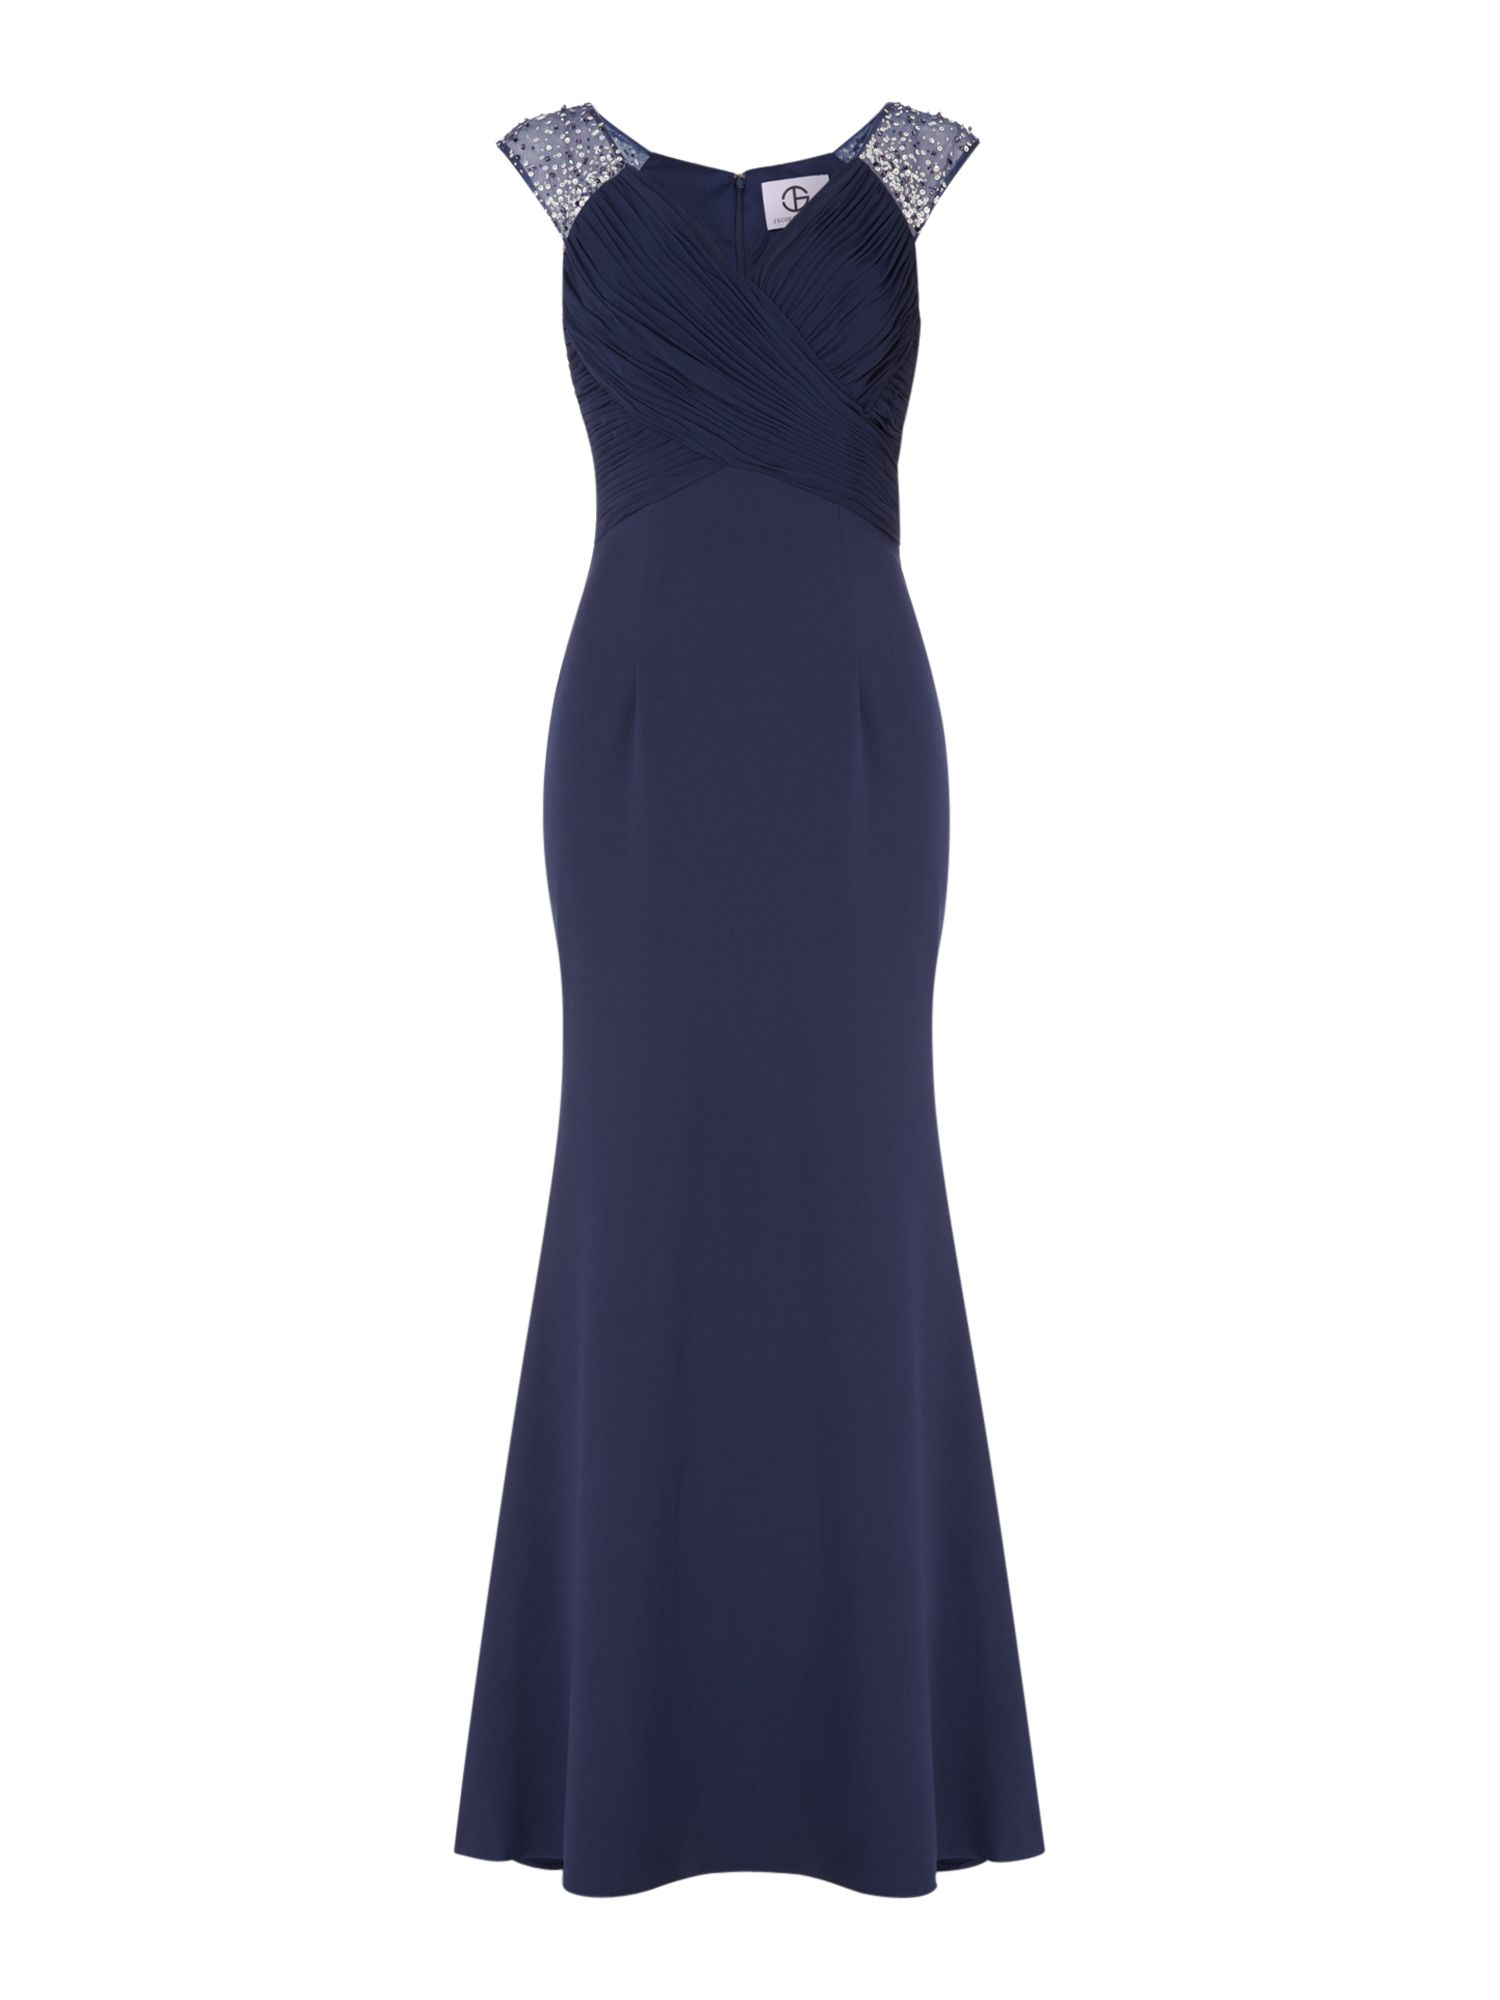 High neck maxi dresses uk only